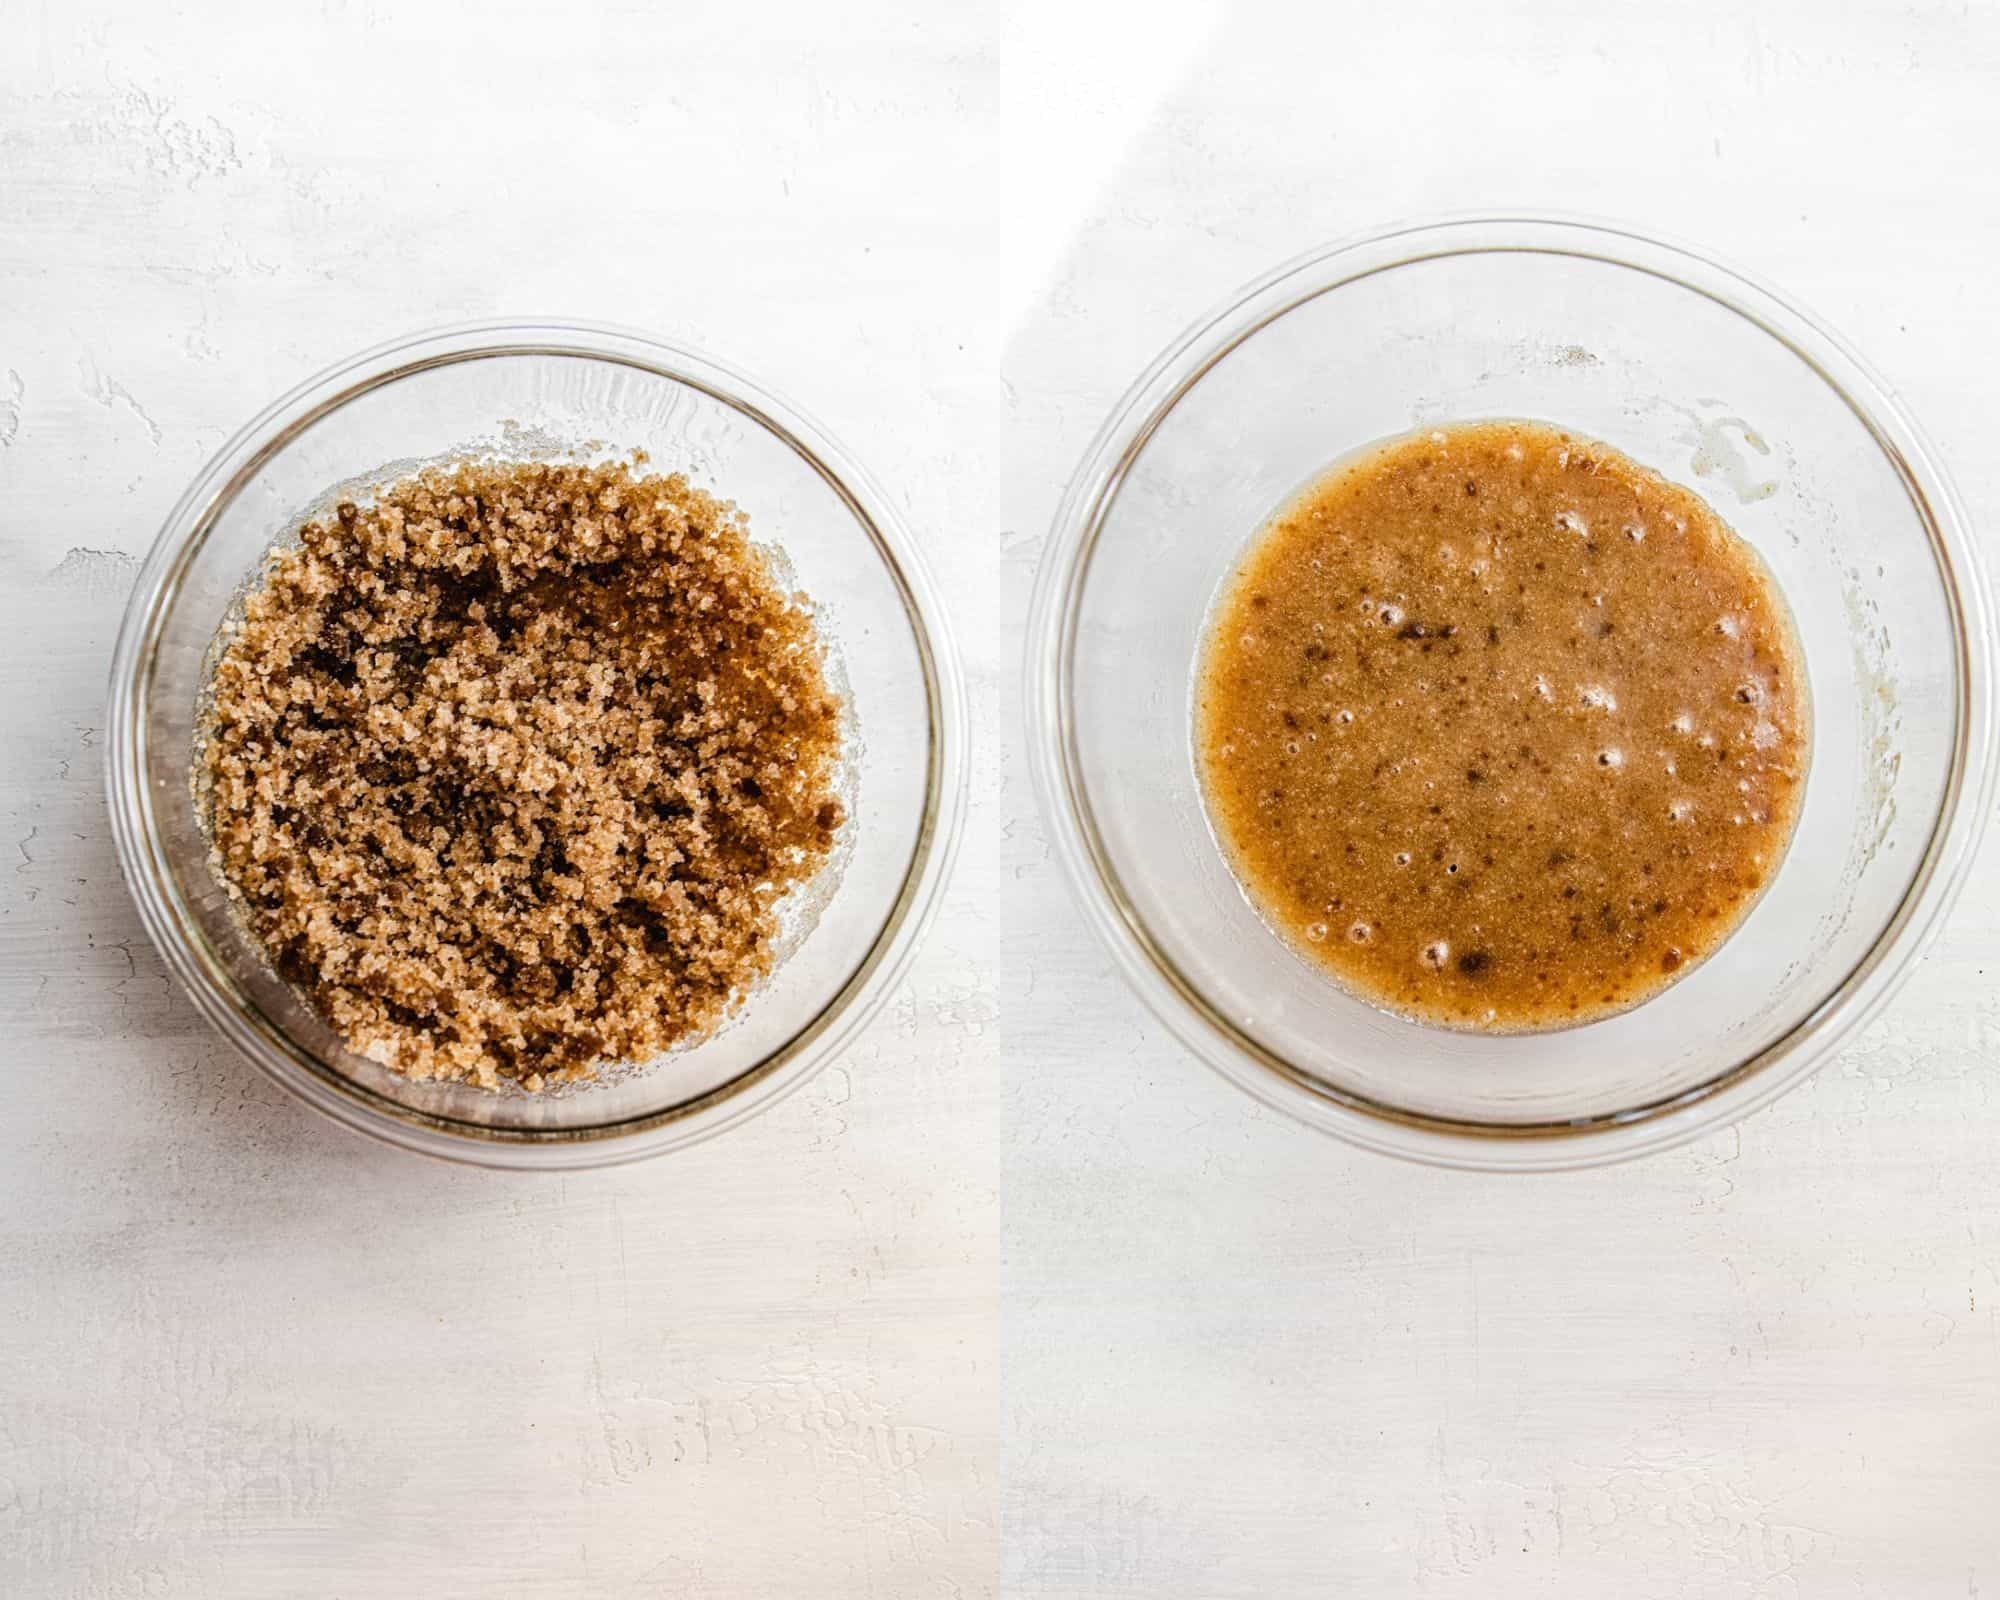 two photos showing the preparation of carrot cake